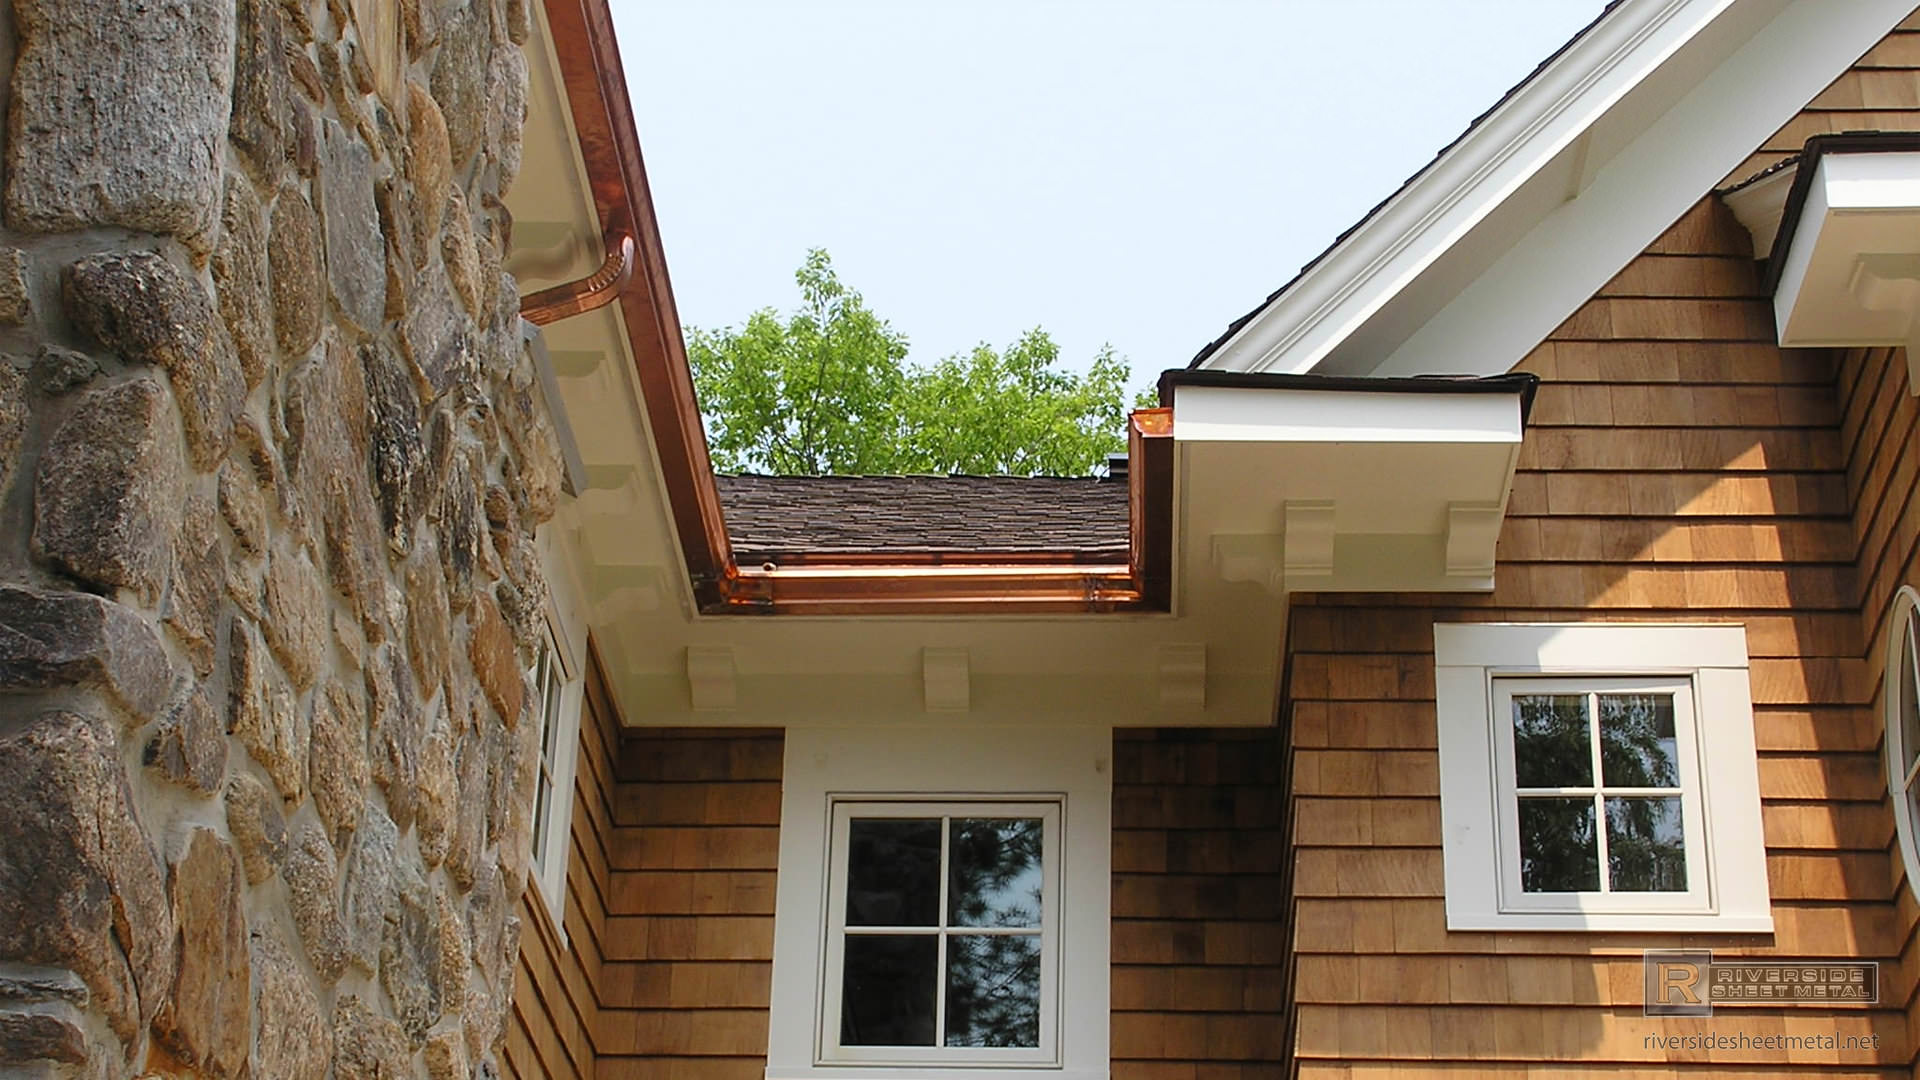 Gutter and Downspouts